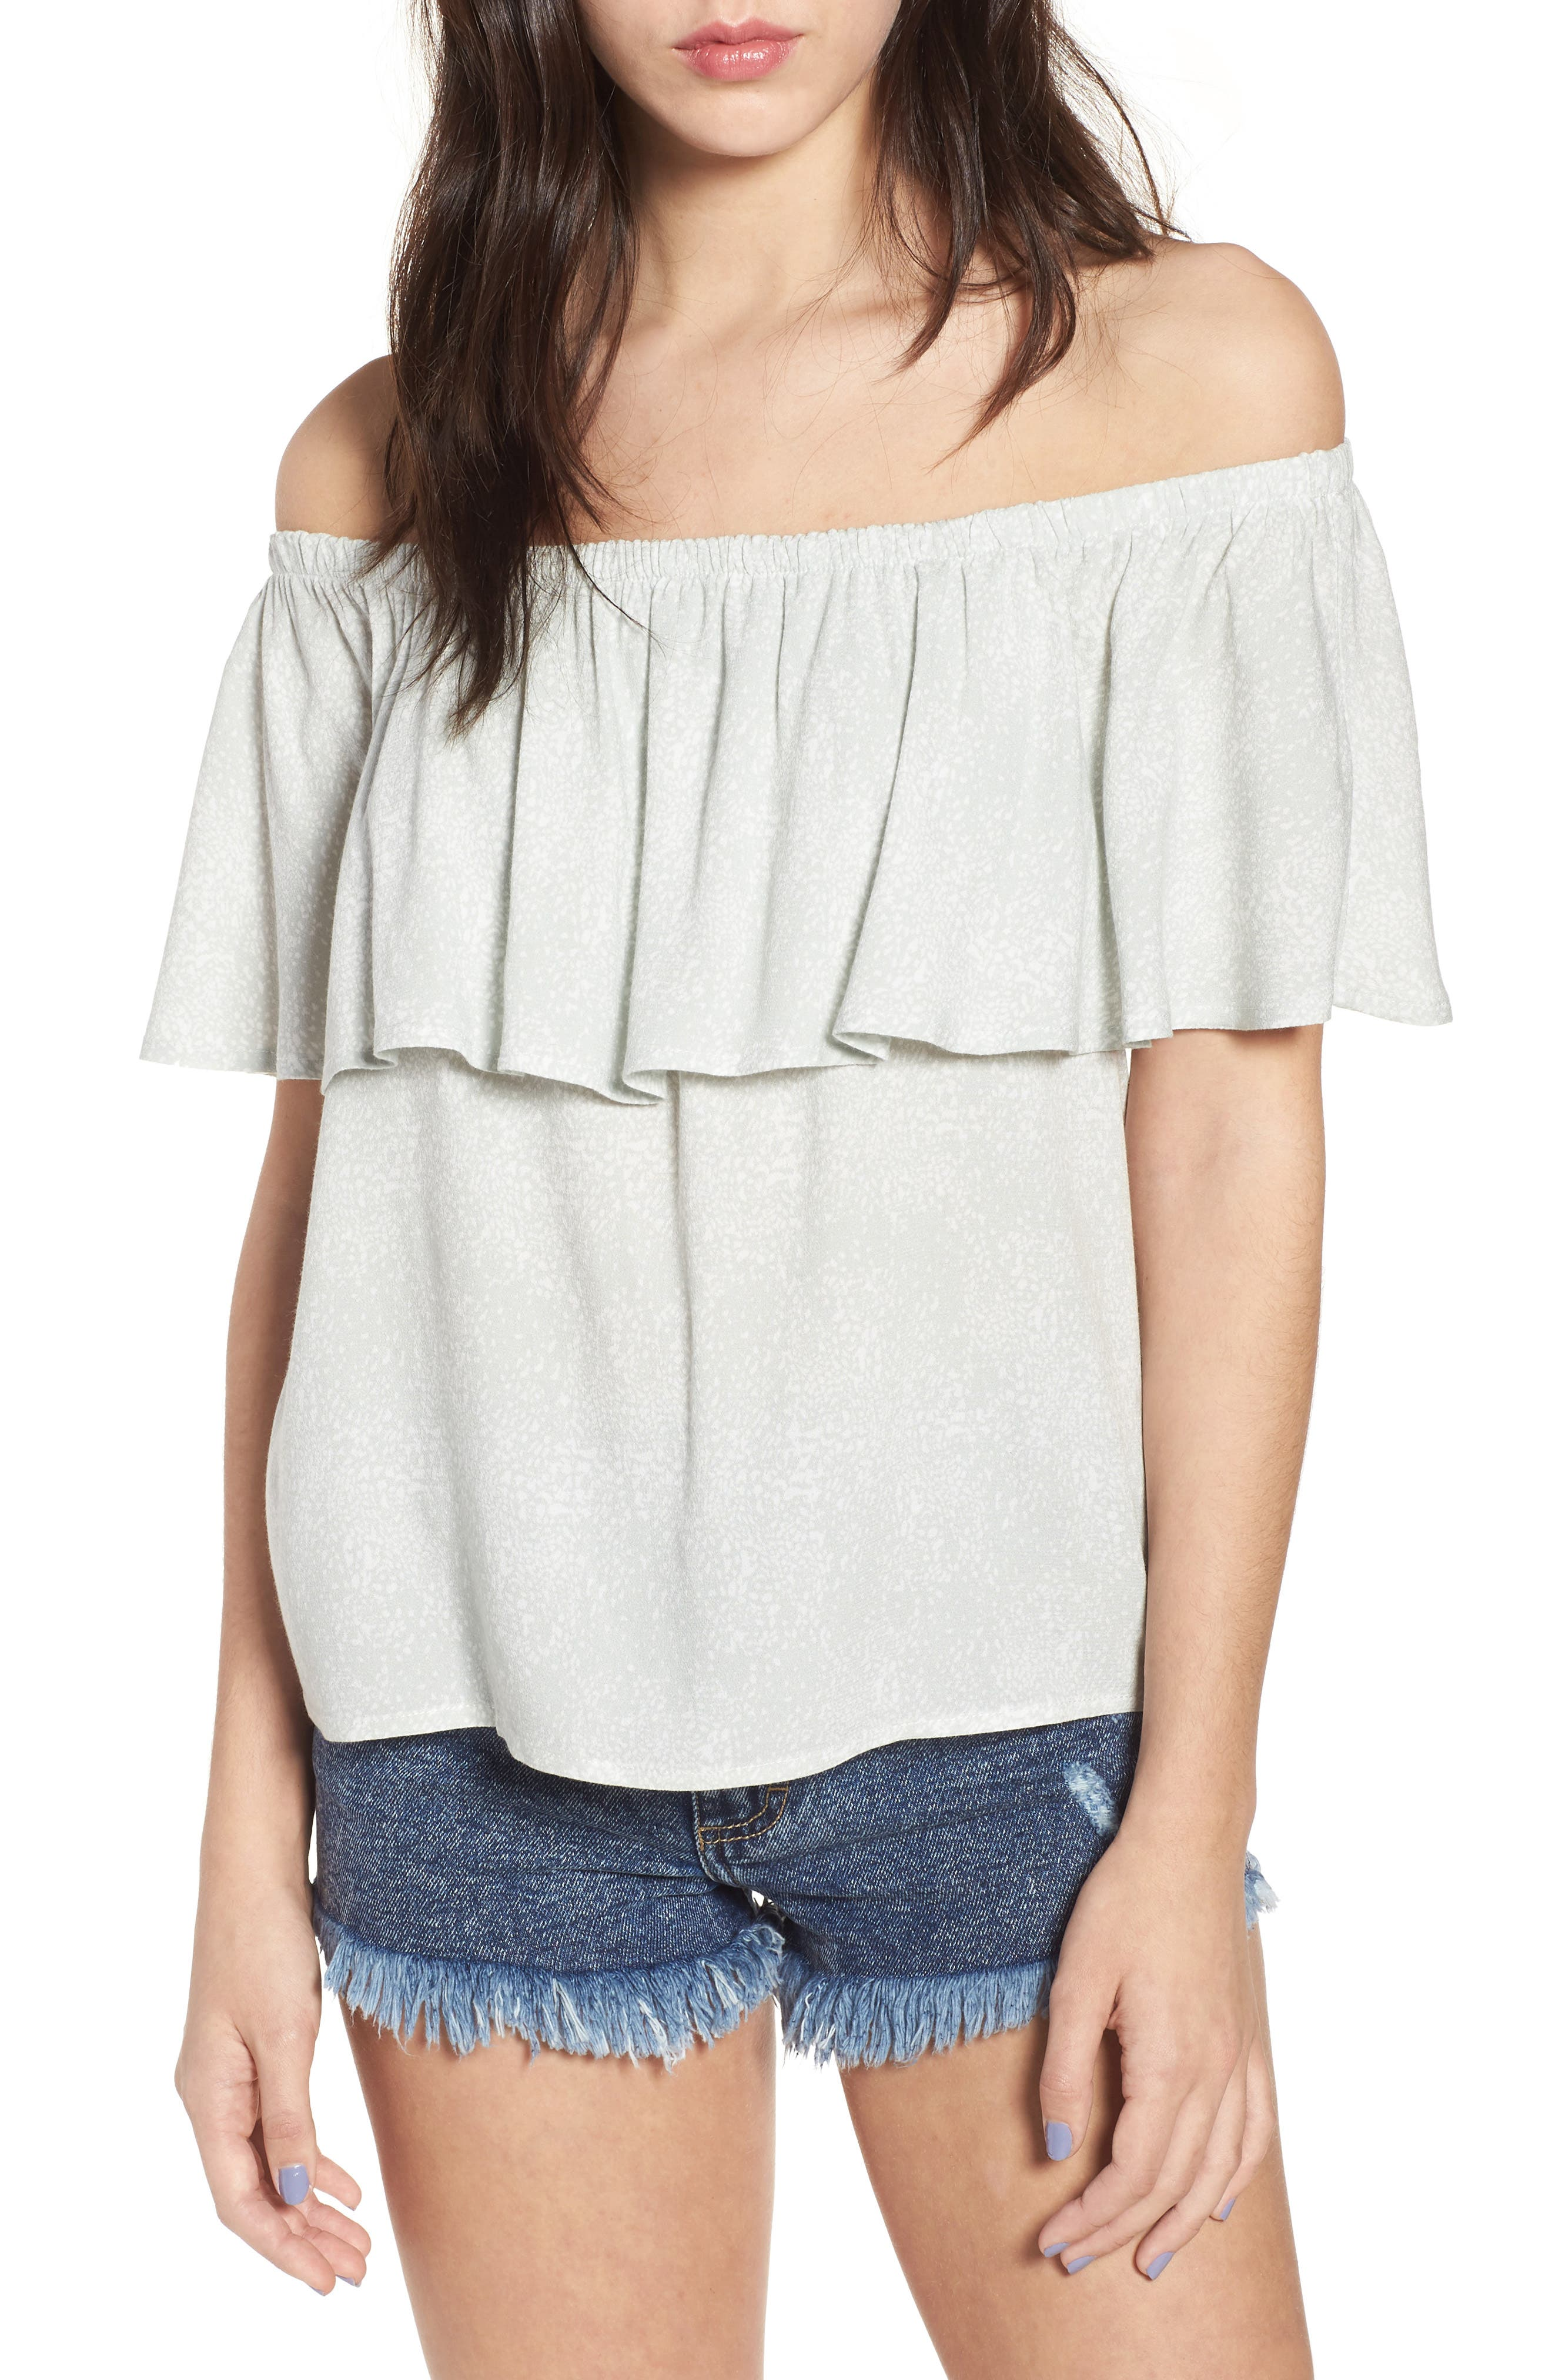 Lira Clothing Mary Off the Shoulder Top